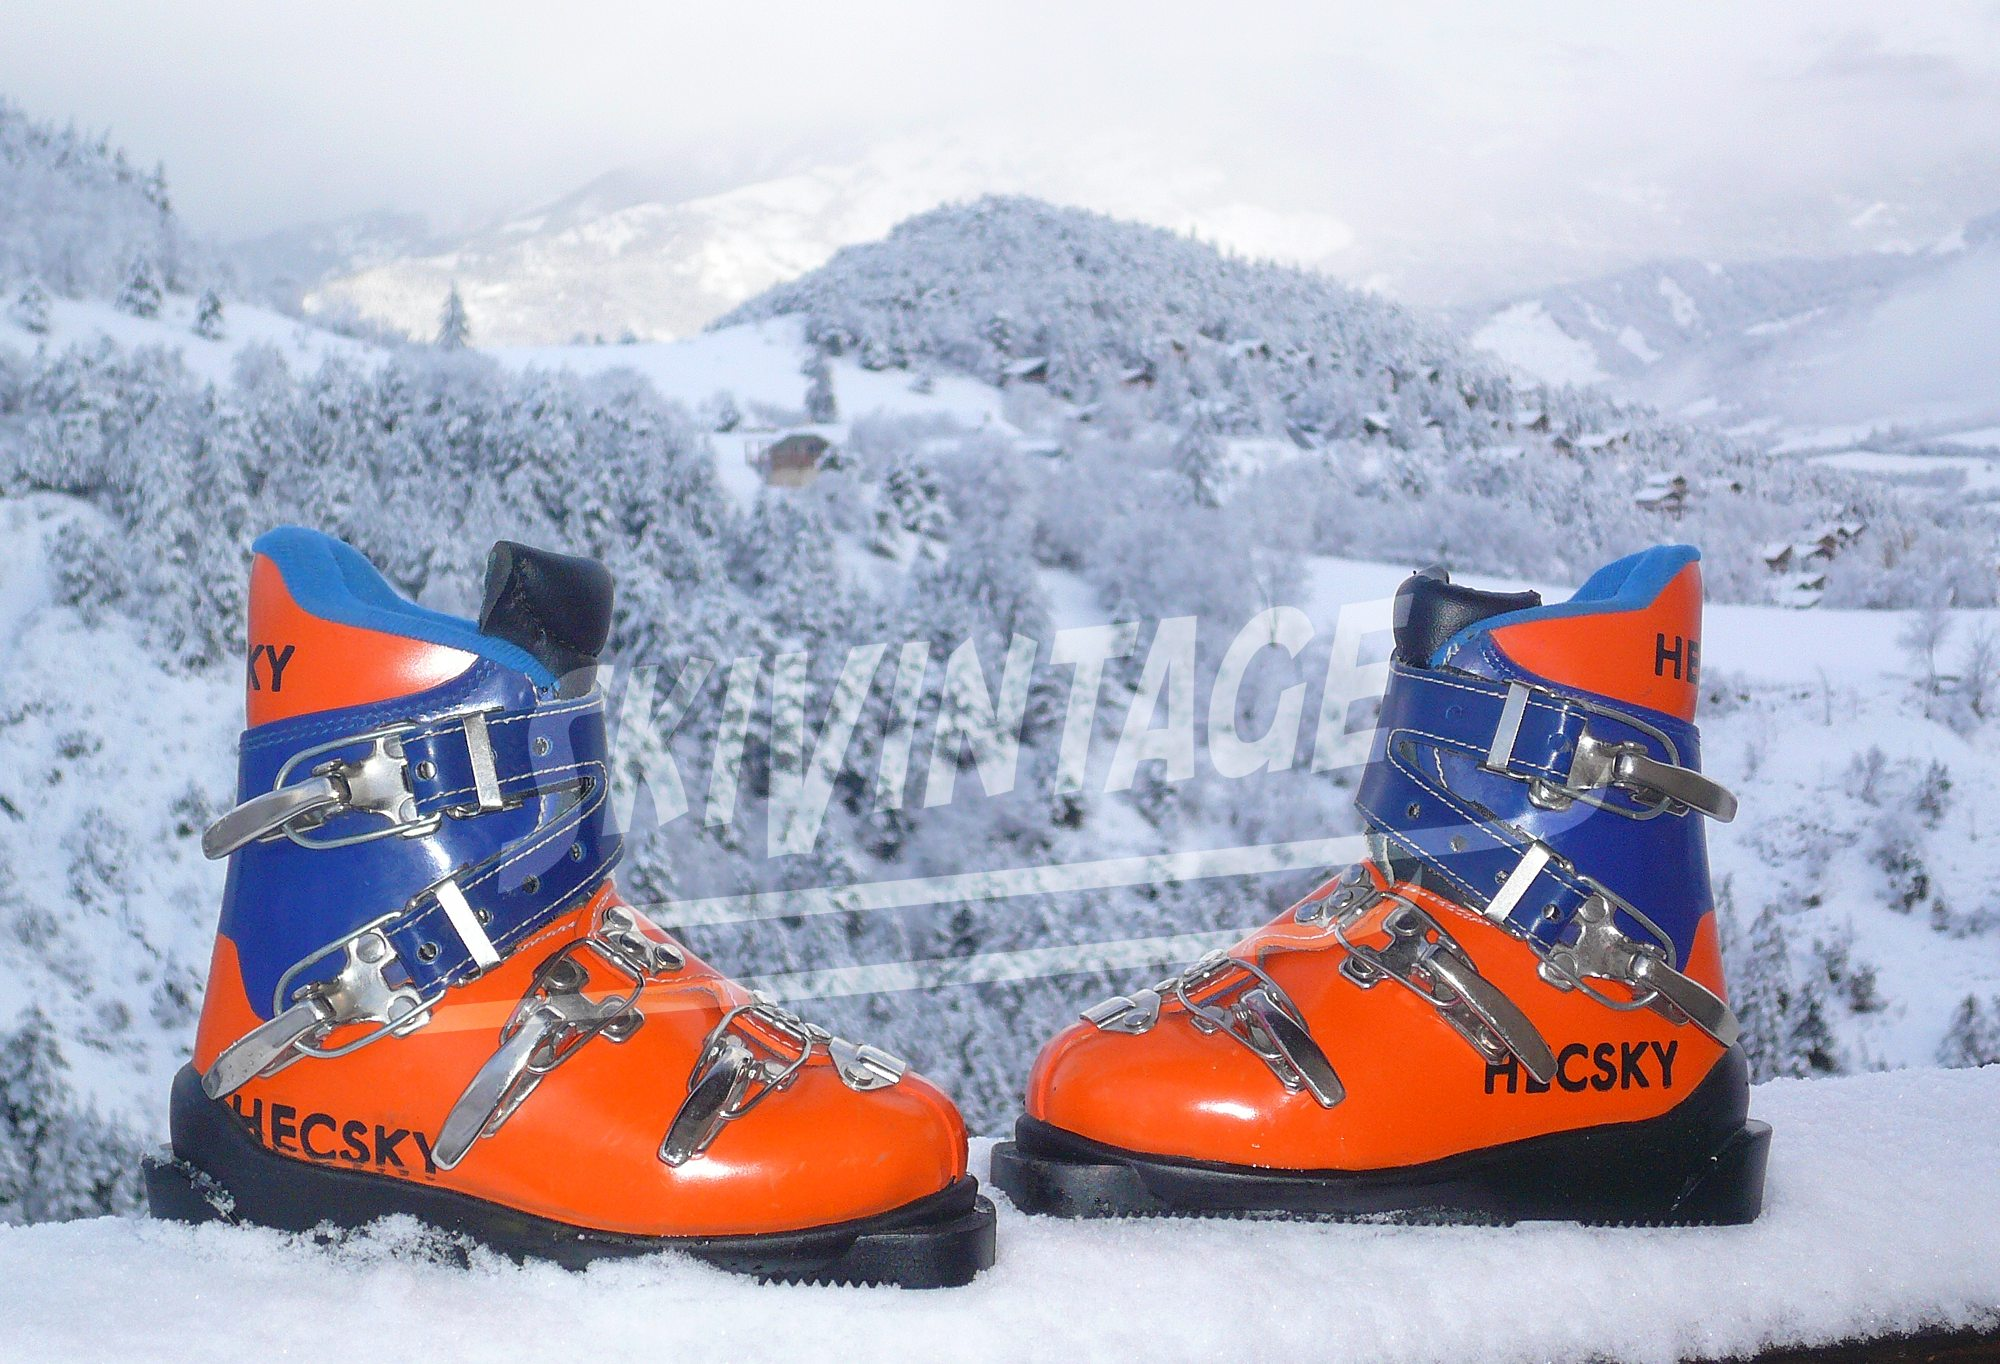 chaussures de ski junior vintage marque hecsky paire de chaussures de ski enfant ca 1970. Black Bedroom Furniture Sets. Home Design Ideas